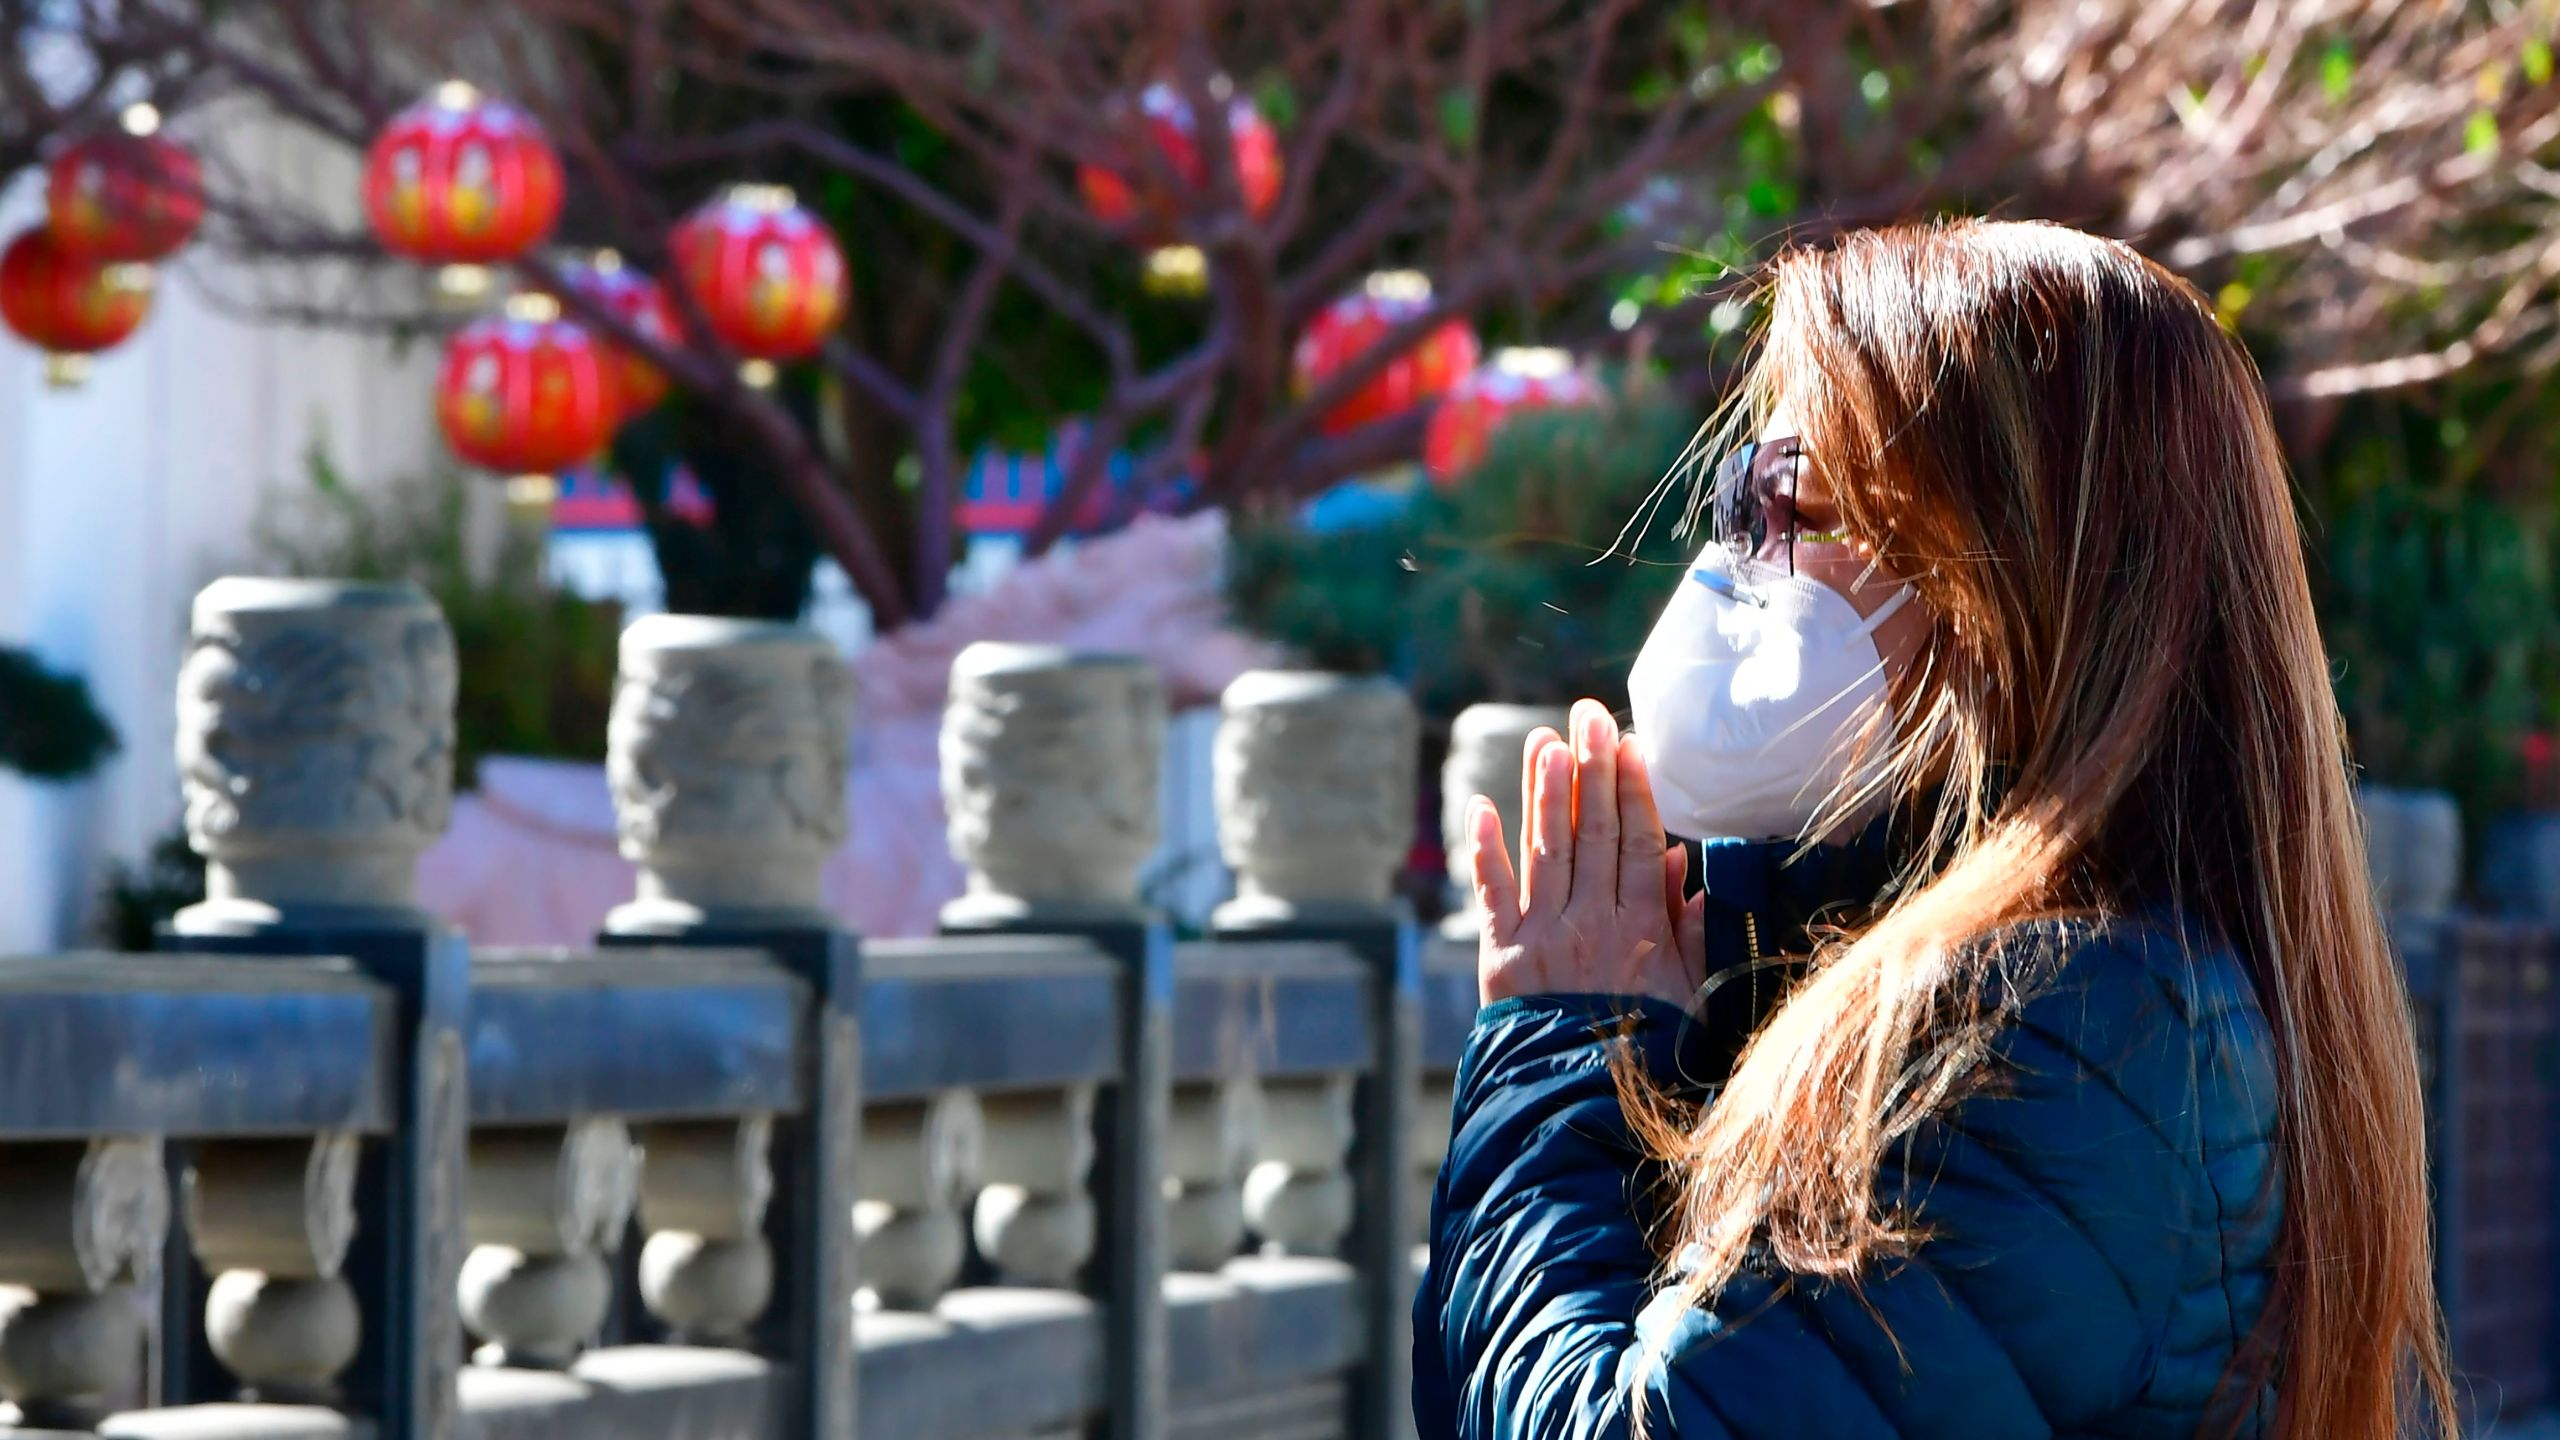 A woman prays on the first day of the Lunar New Year of the Ox outside the Thien Hau Temple, temporarily closed due to the coronavirus pandemic, in the Chinatown neighborhood of Los Angeles, California on February 12, 2021. (Photo by Frederic J. BROWN / AFP) (Photo by FREDERIC J. BROWN/AFP via Getty Images)